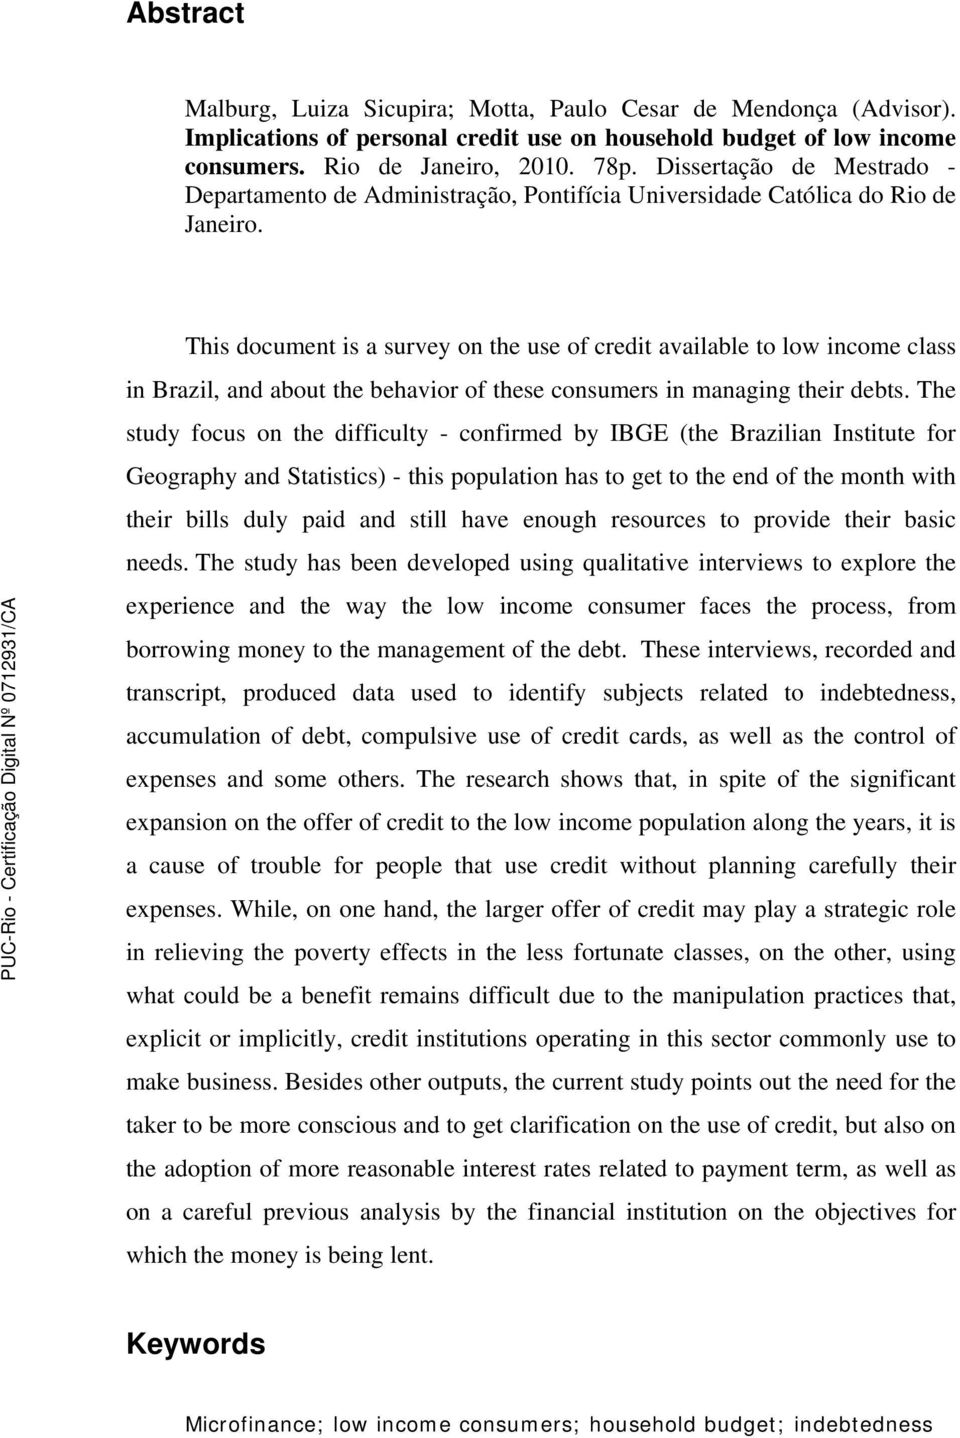 This document is a survey on the use of credit available to low income class in Brazil, and about the behavior of these consumers in managing their debts.